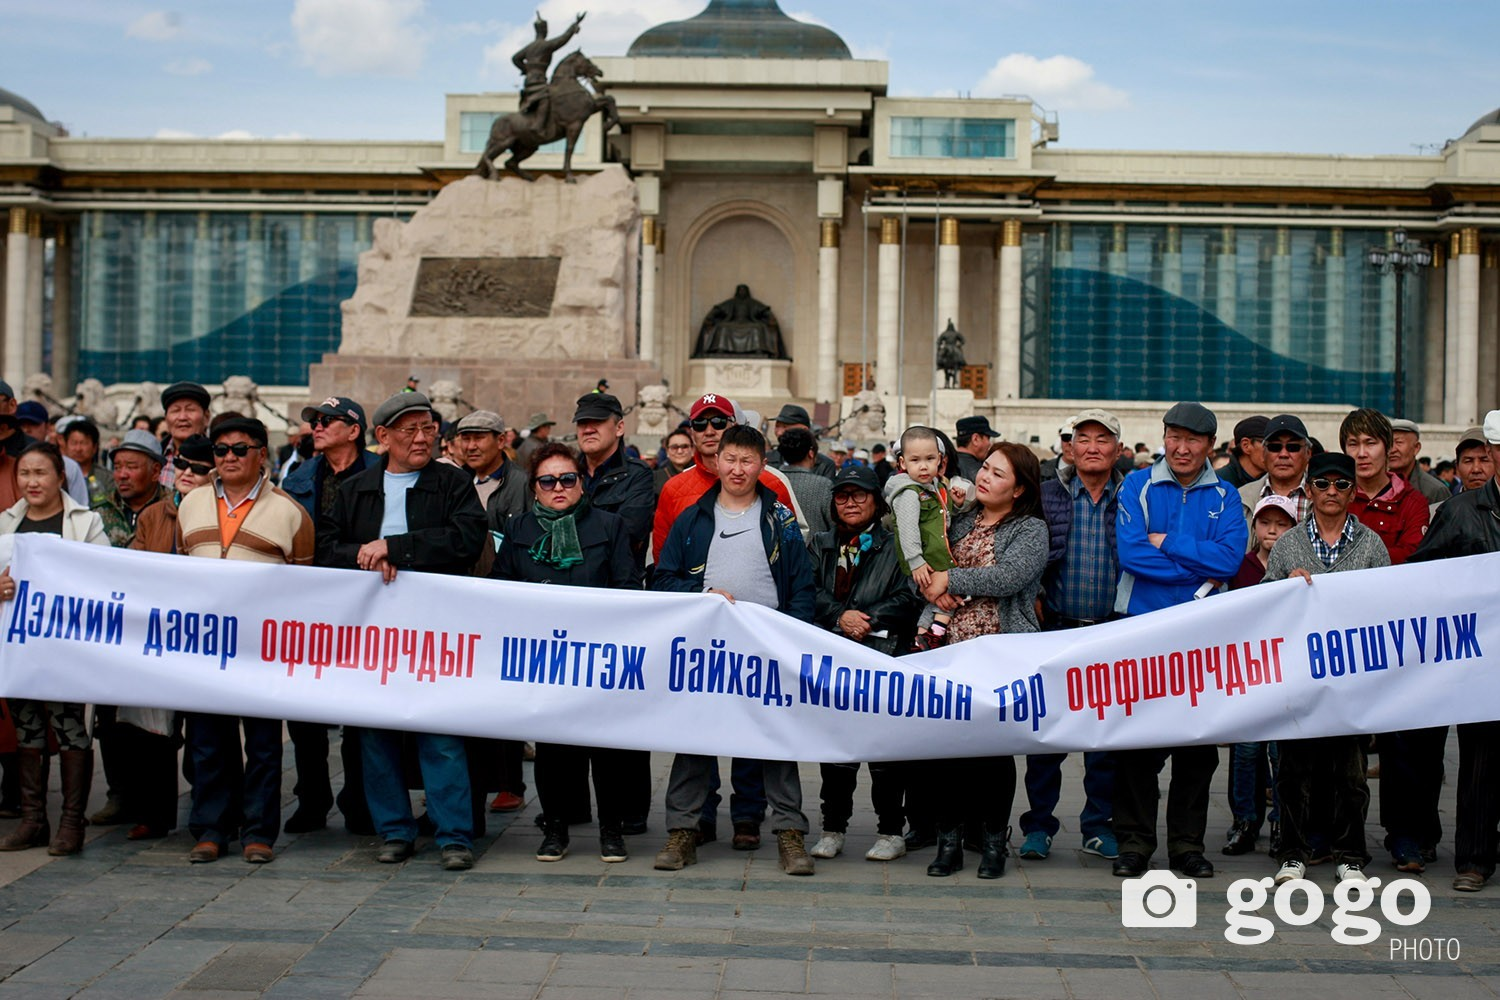 Countries all around the world punish authorities and MPs with offshore accounts, but Government of Mongolia is defending them.